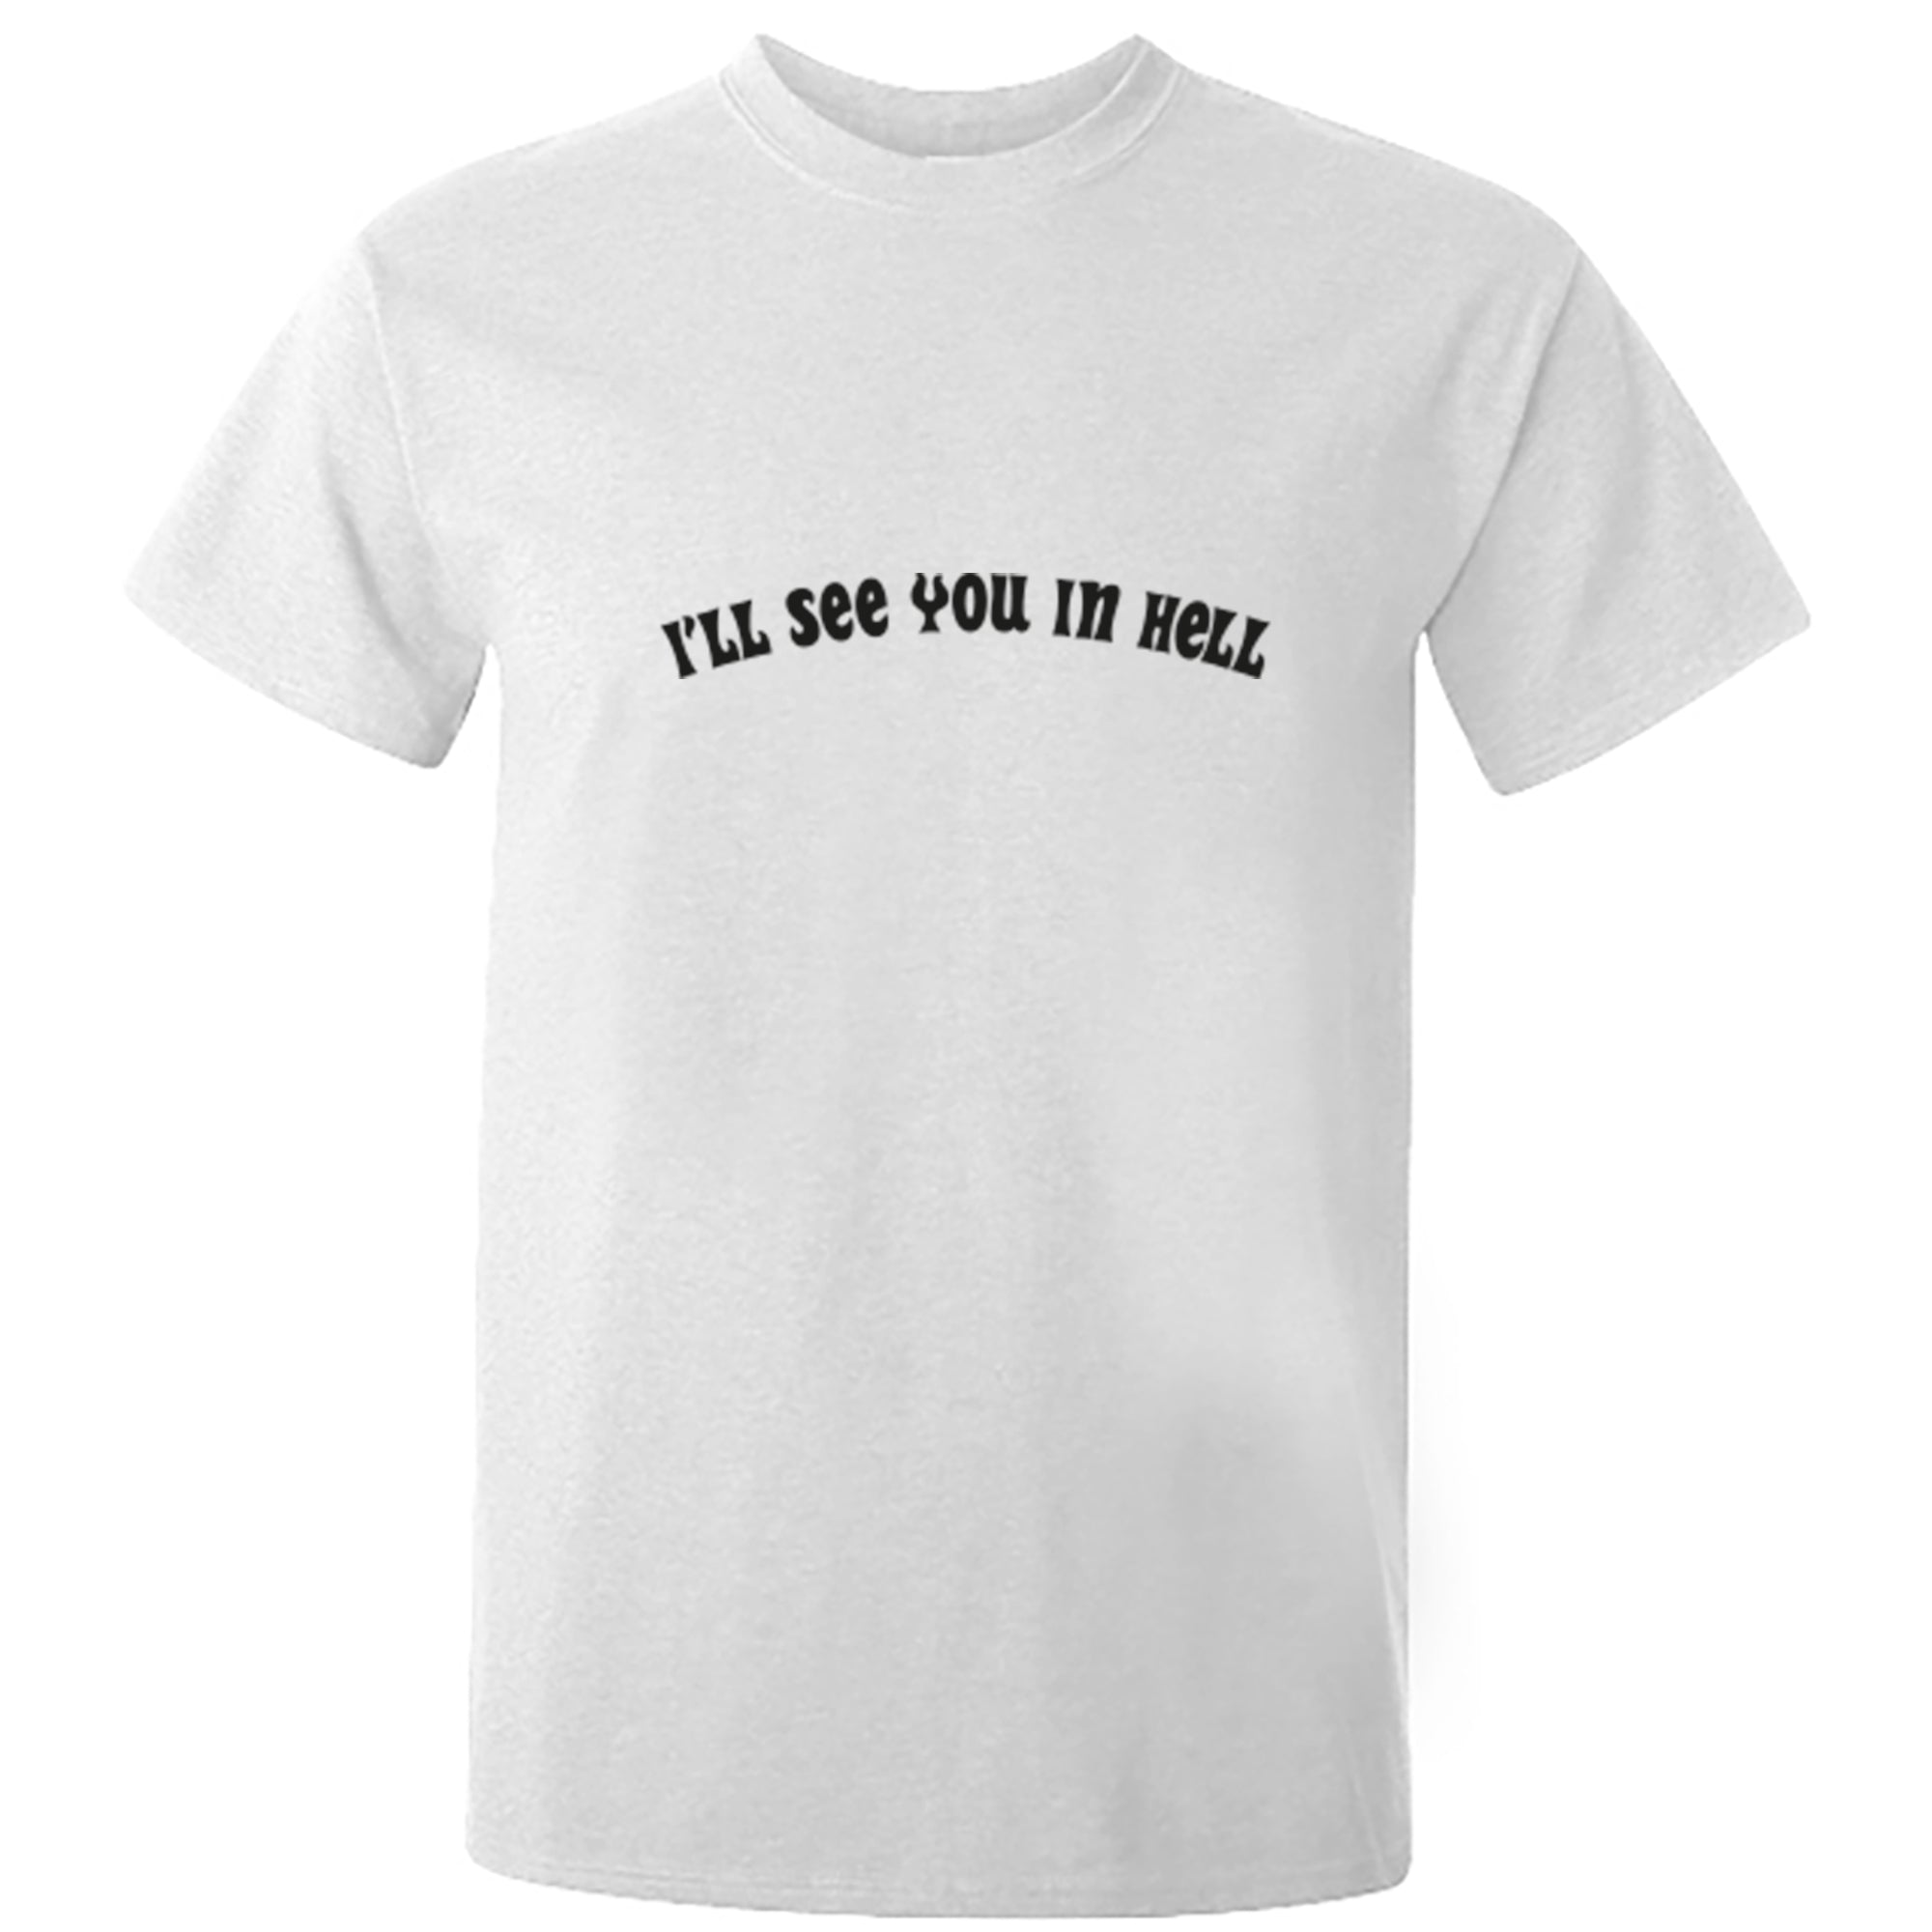 I'll See You In Hell Unisex Fit T-Shirt S1202 - Illustrated Identity Ltd.